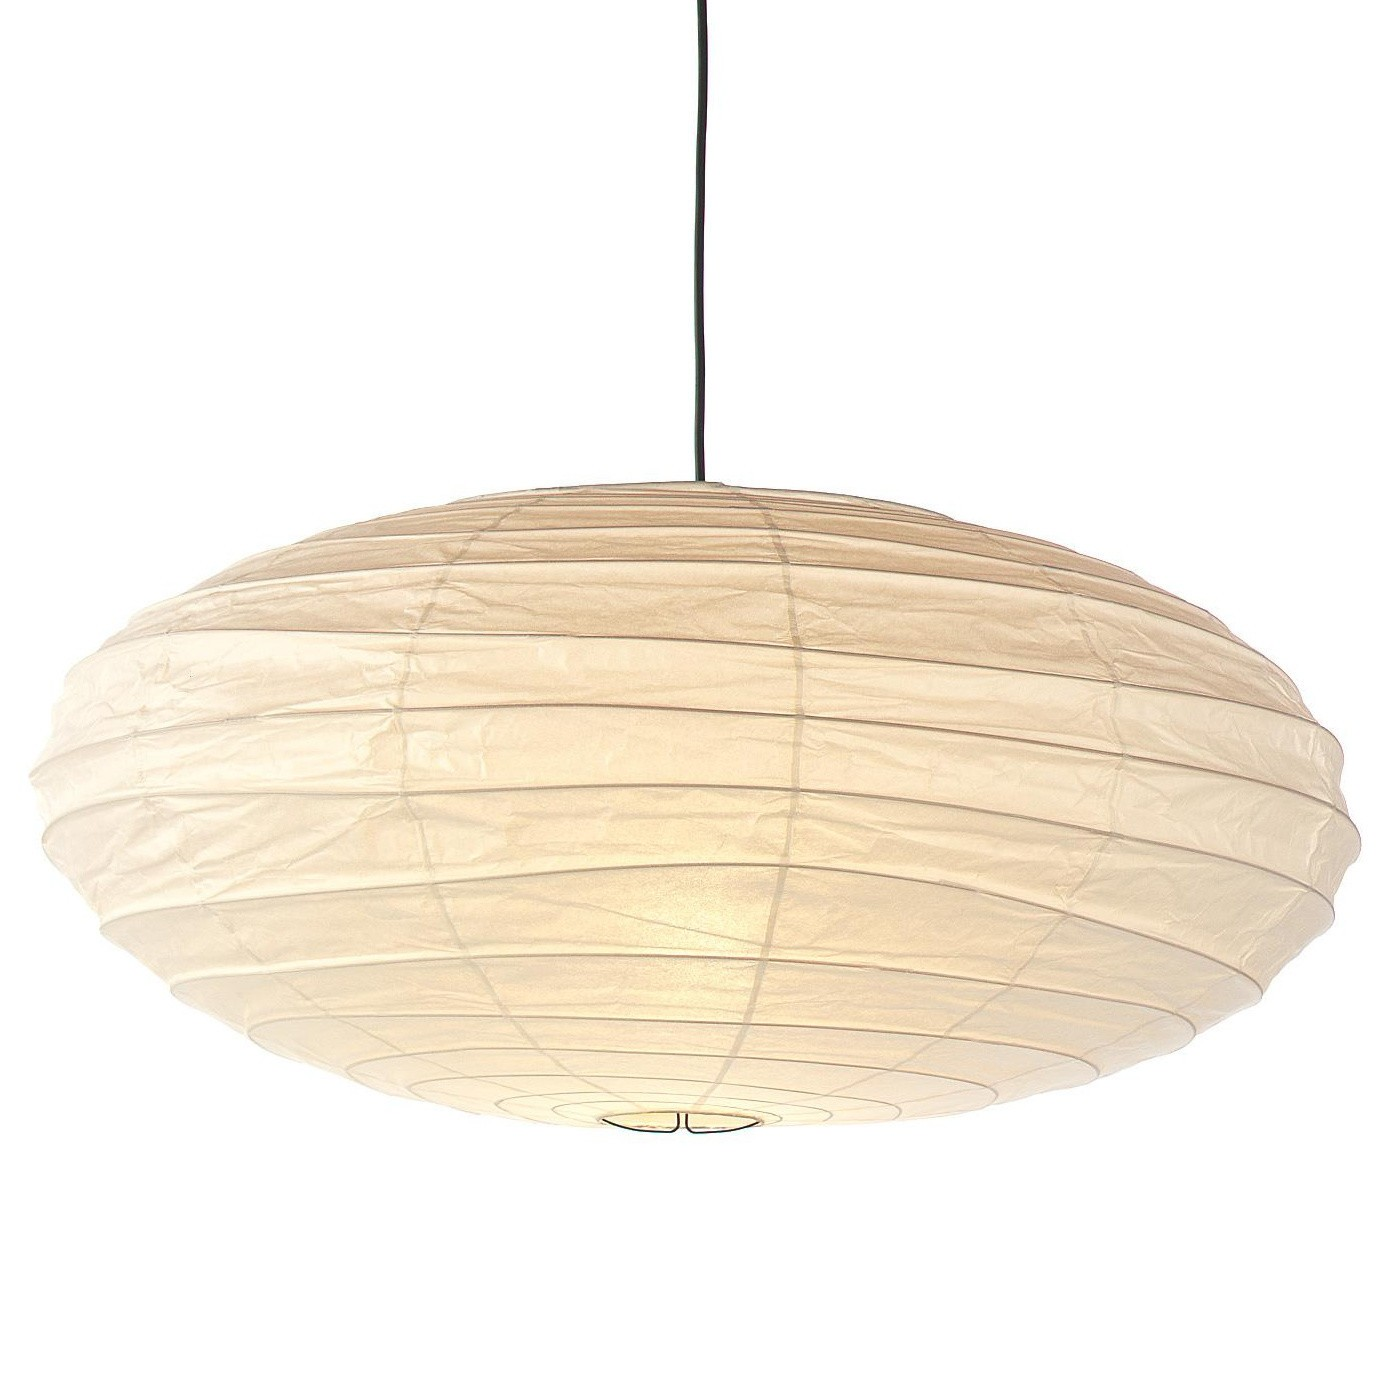 Hängelampe Papier Akari En Suspension Lamp Oval